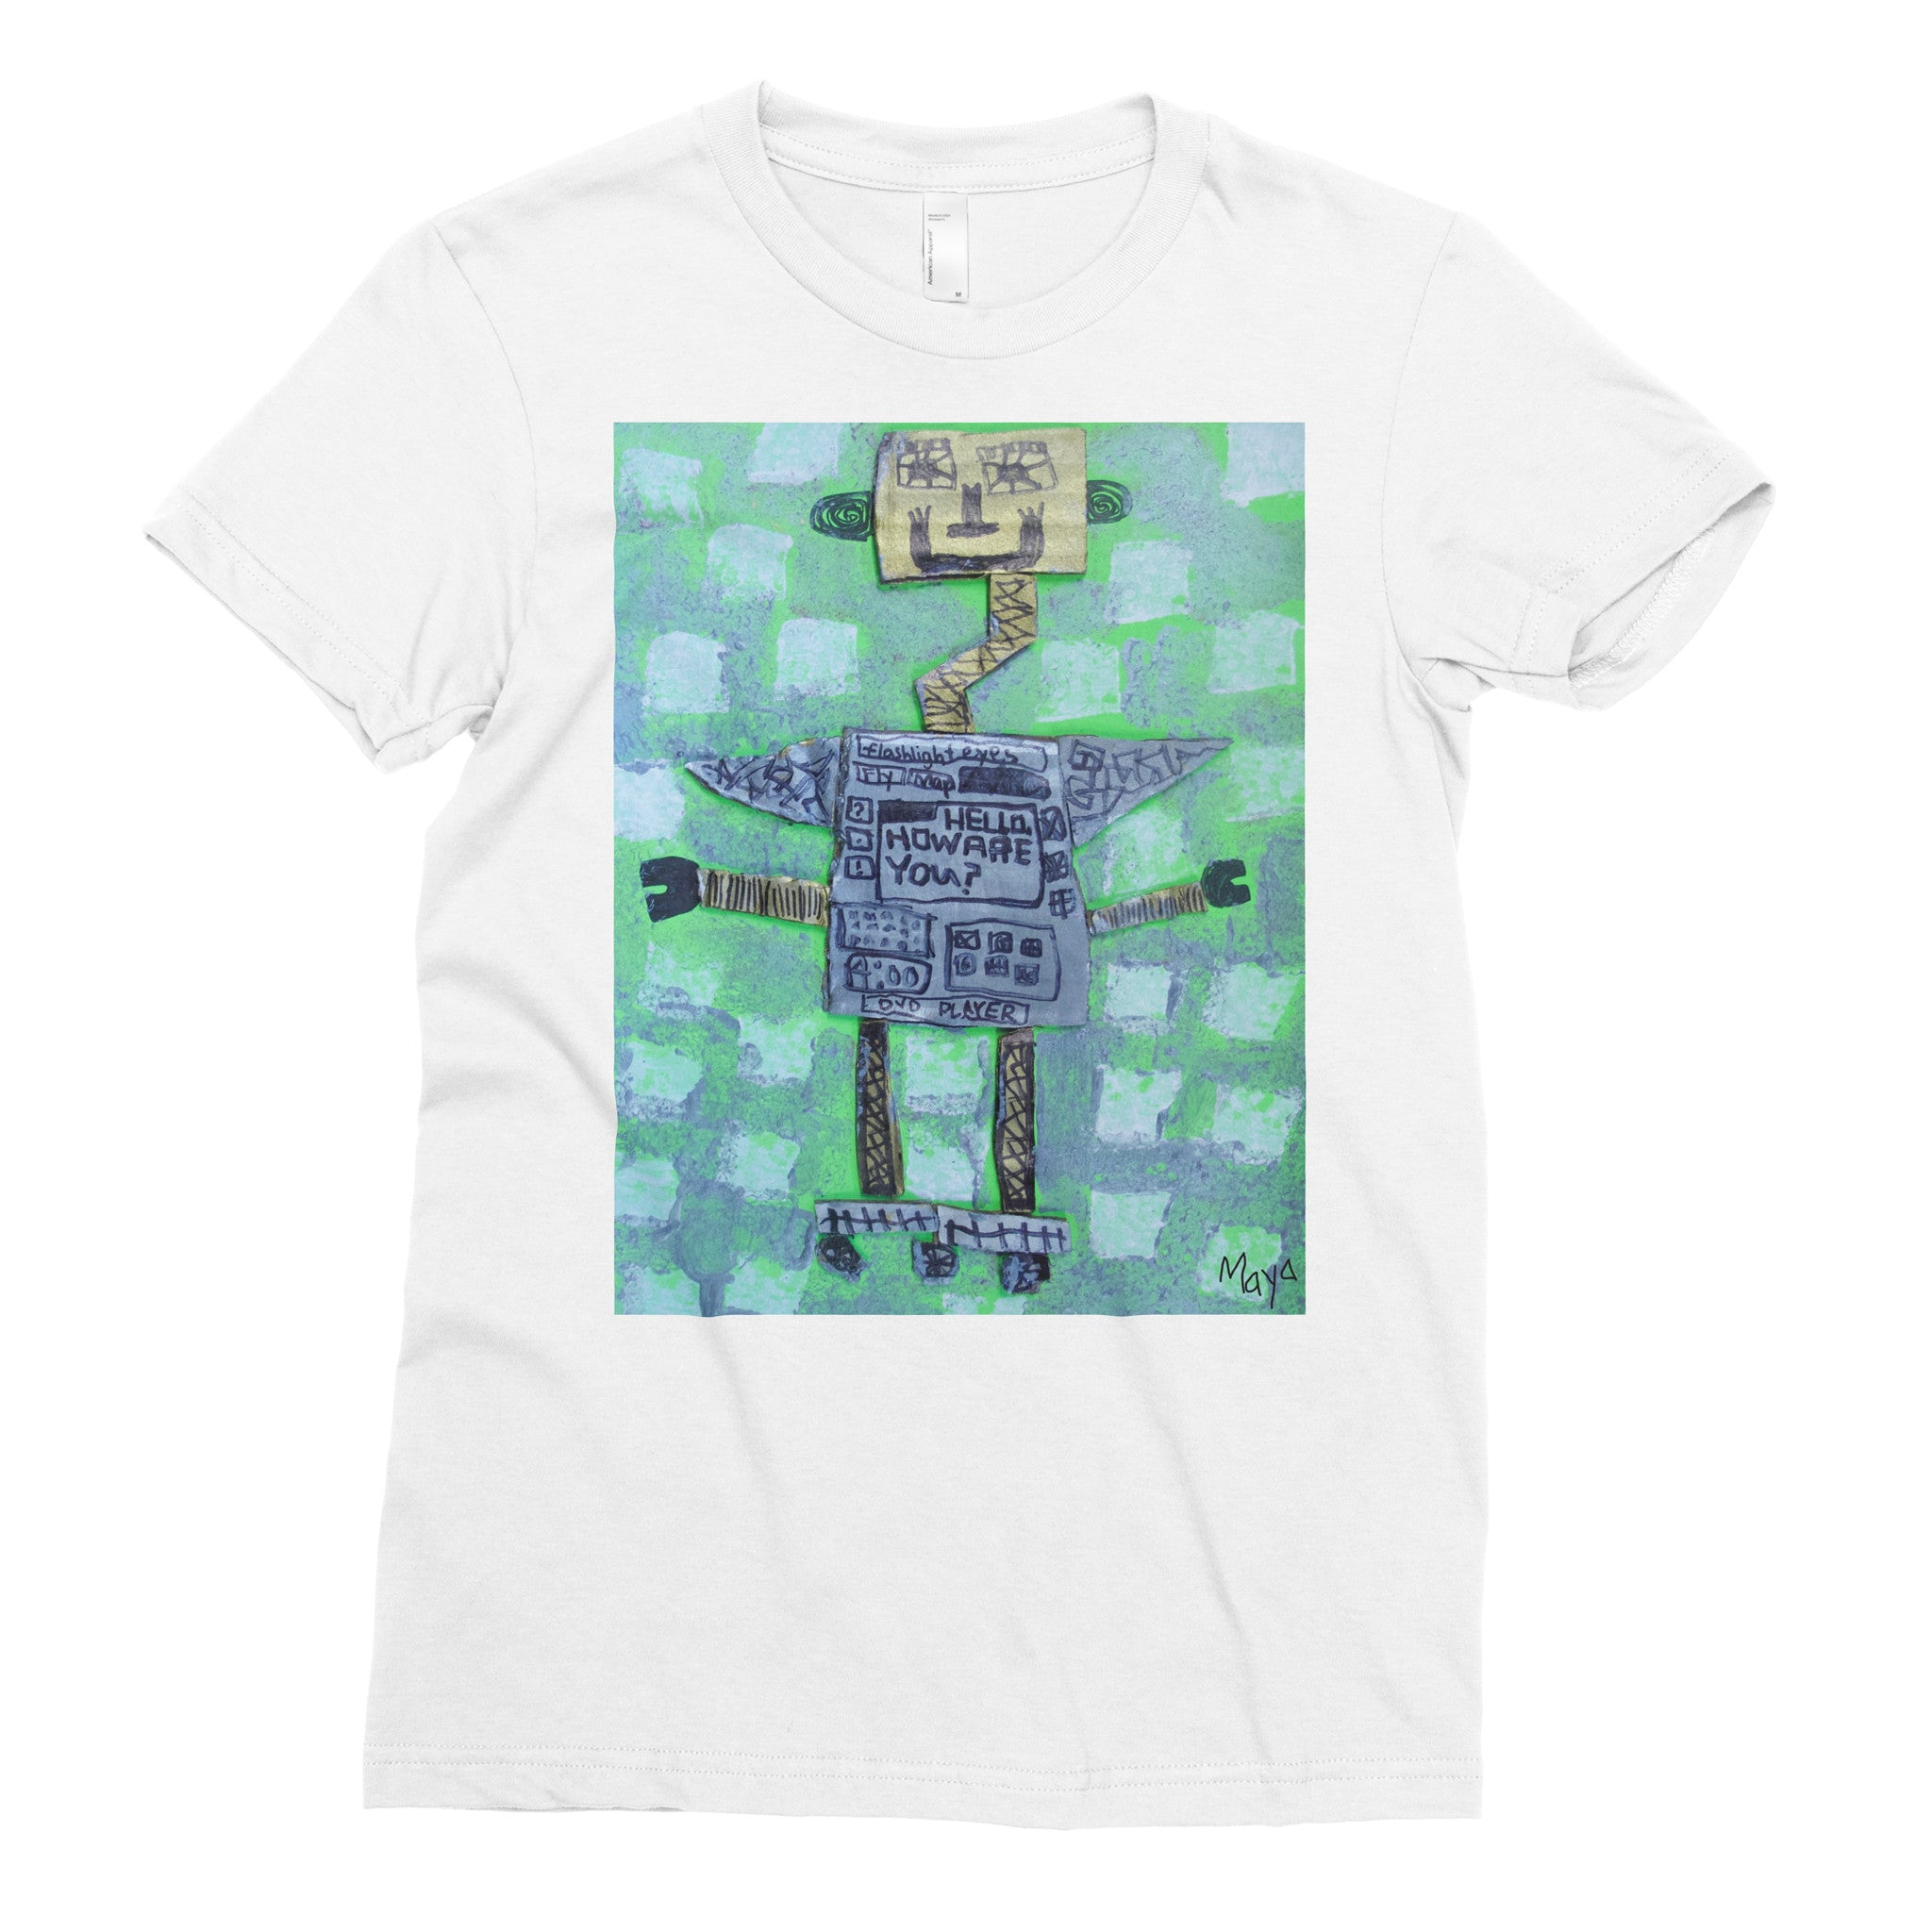 Maya, 2nd grade - Adult T-shirt - Rightside Shirts - 1